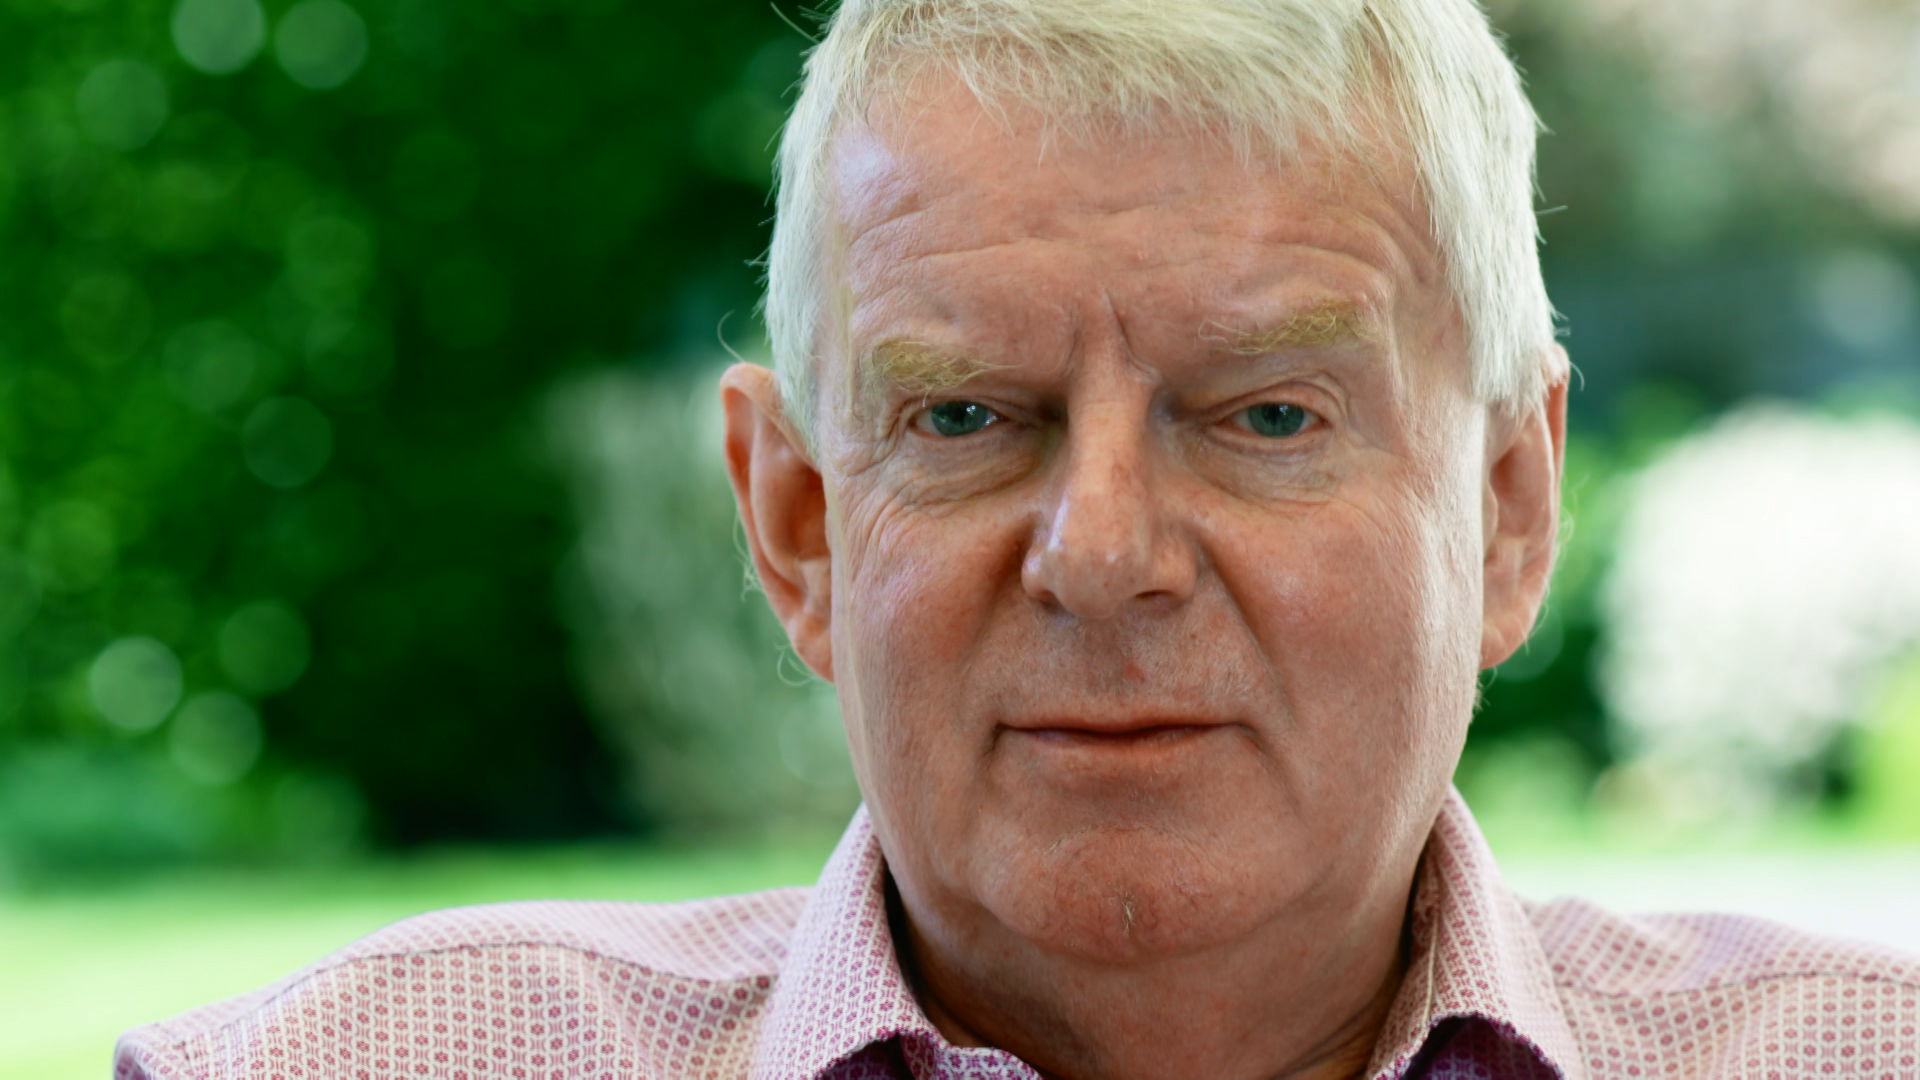 Motty: the man behind the sheepskin - John Motson looking into camera